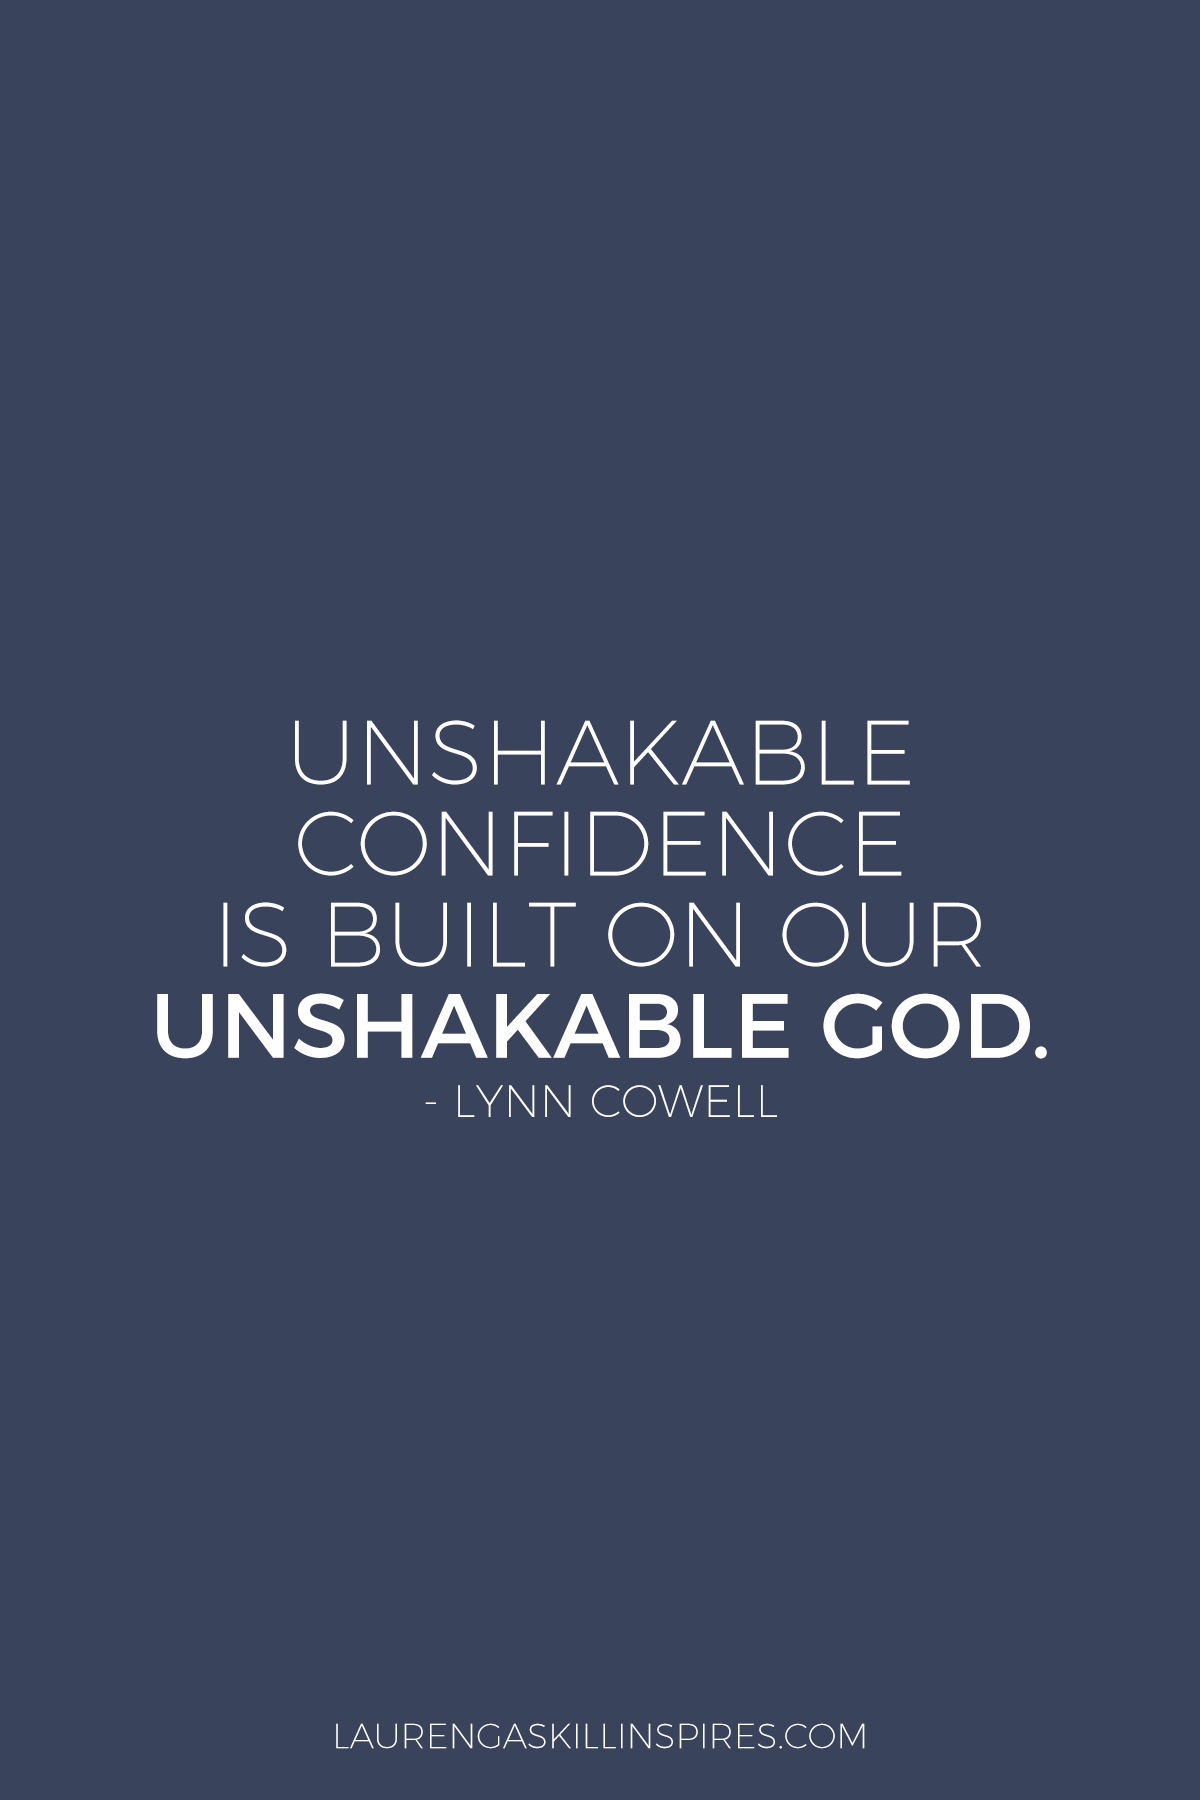 Unshakable confidence is built on our unshakable God.